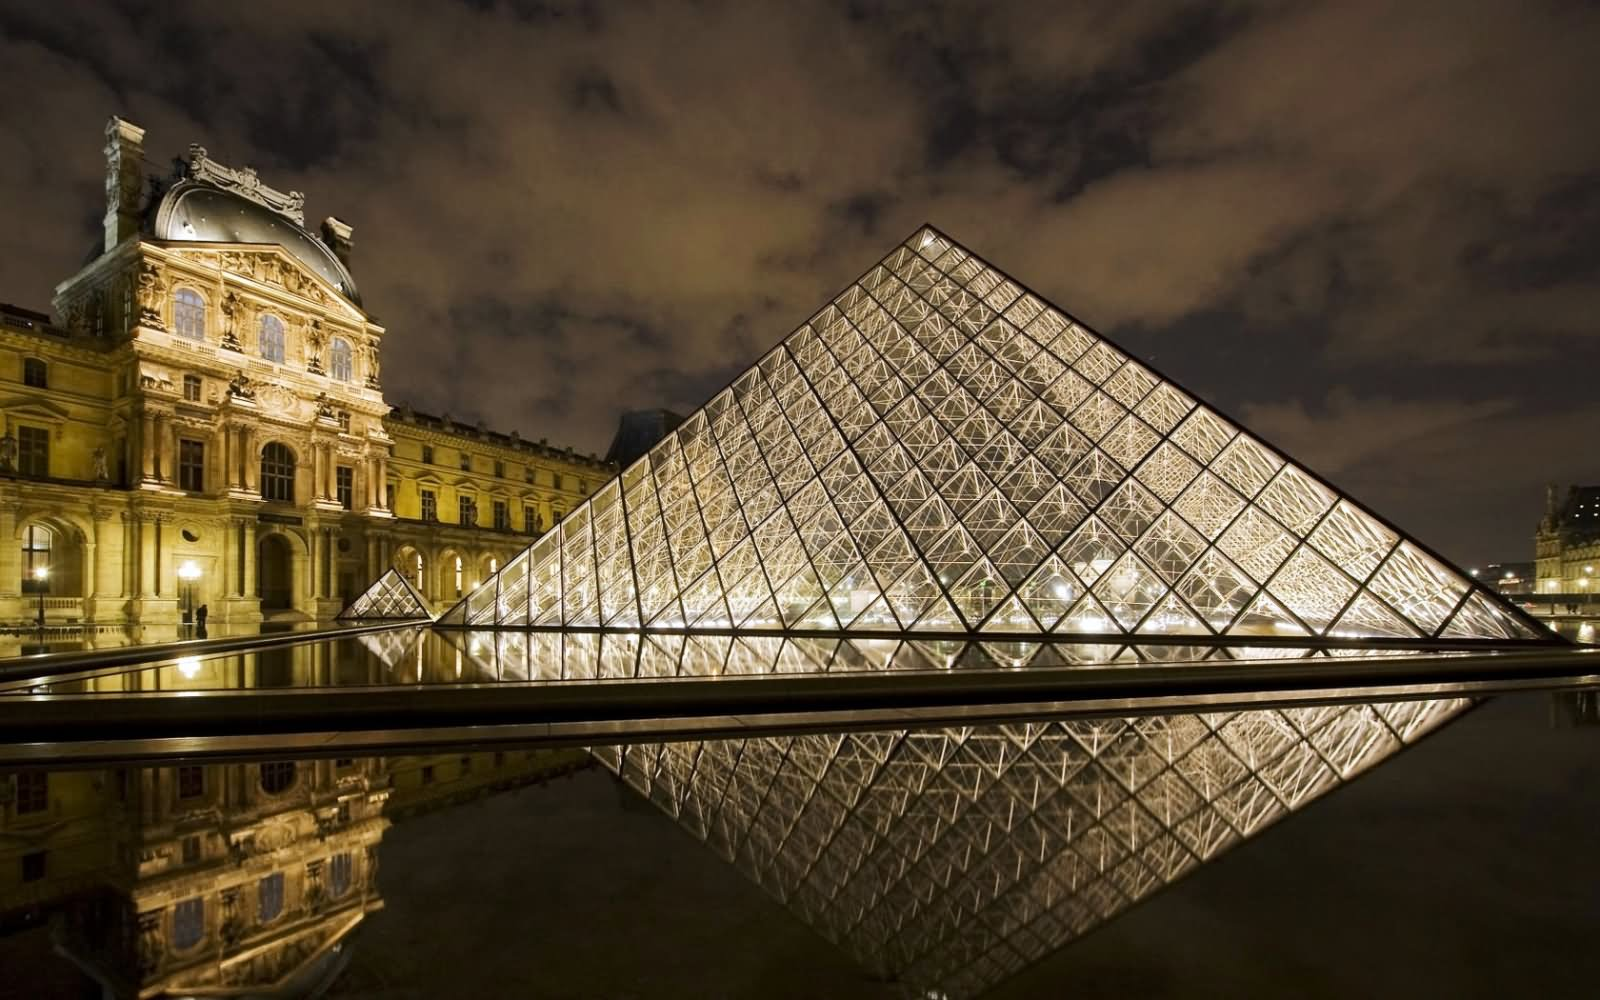 Beautiful Picture Of Glass Pyramid And The Louvre Museum At Night